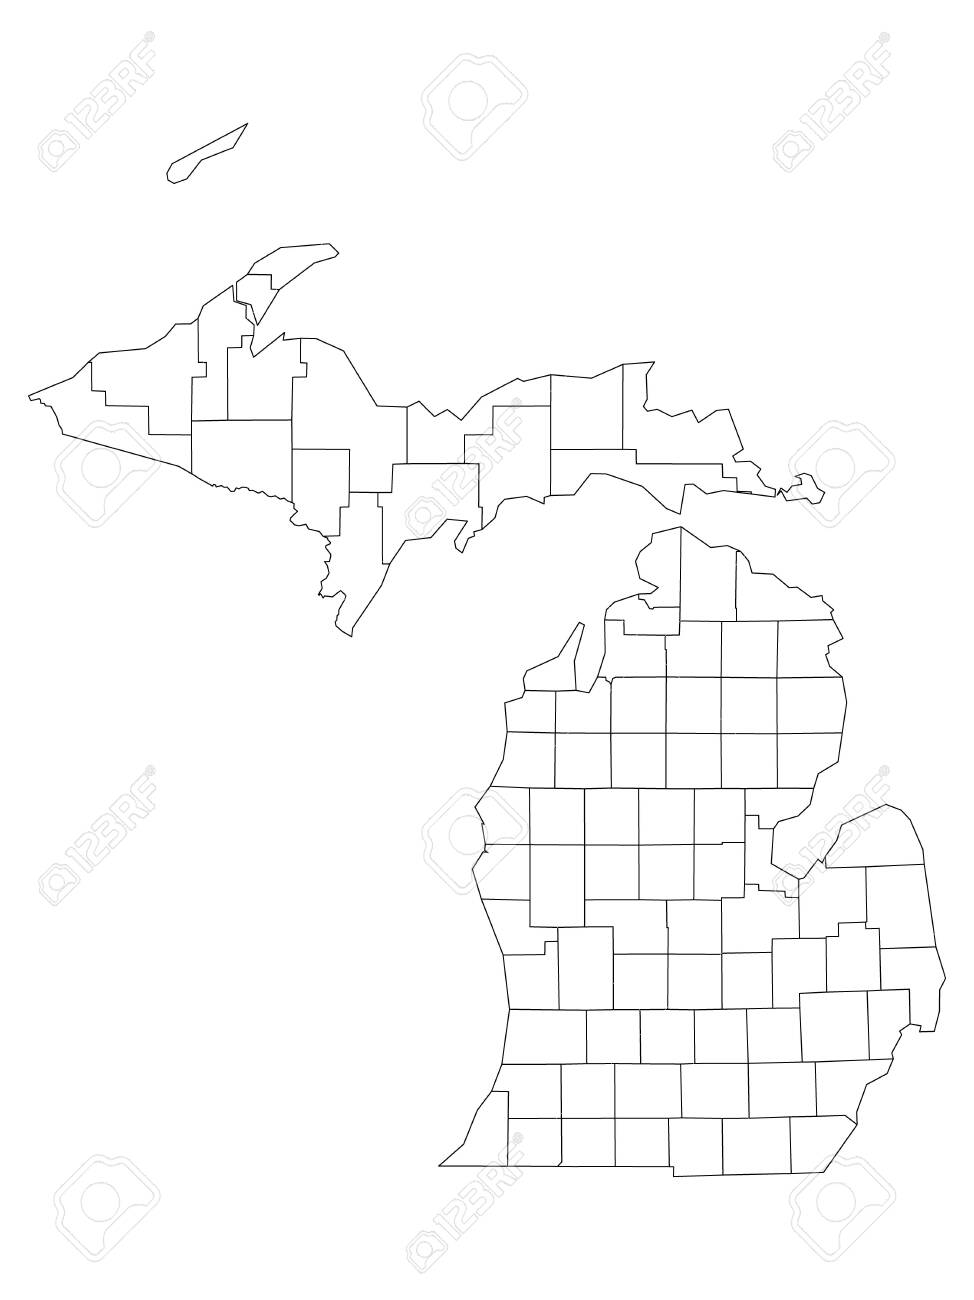 White Outline Counties Map Of Us State Of Michigan Royalty Free Cliparts Vectors And Stock Illustration Image 139285218